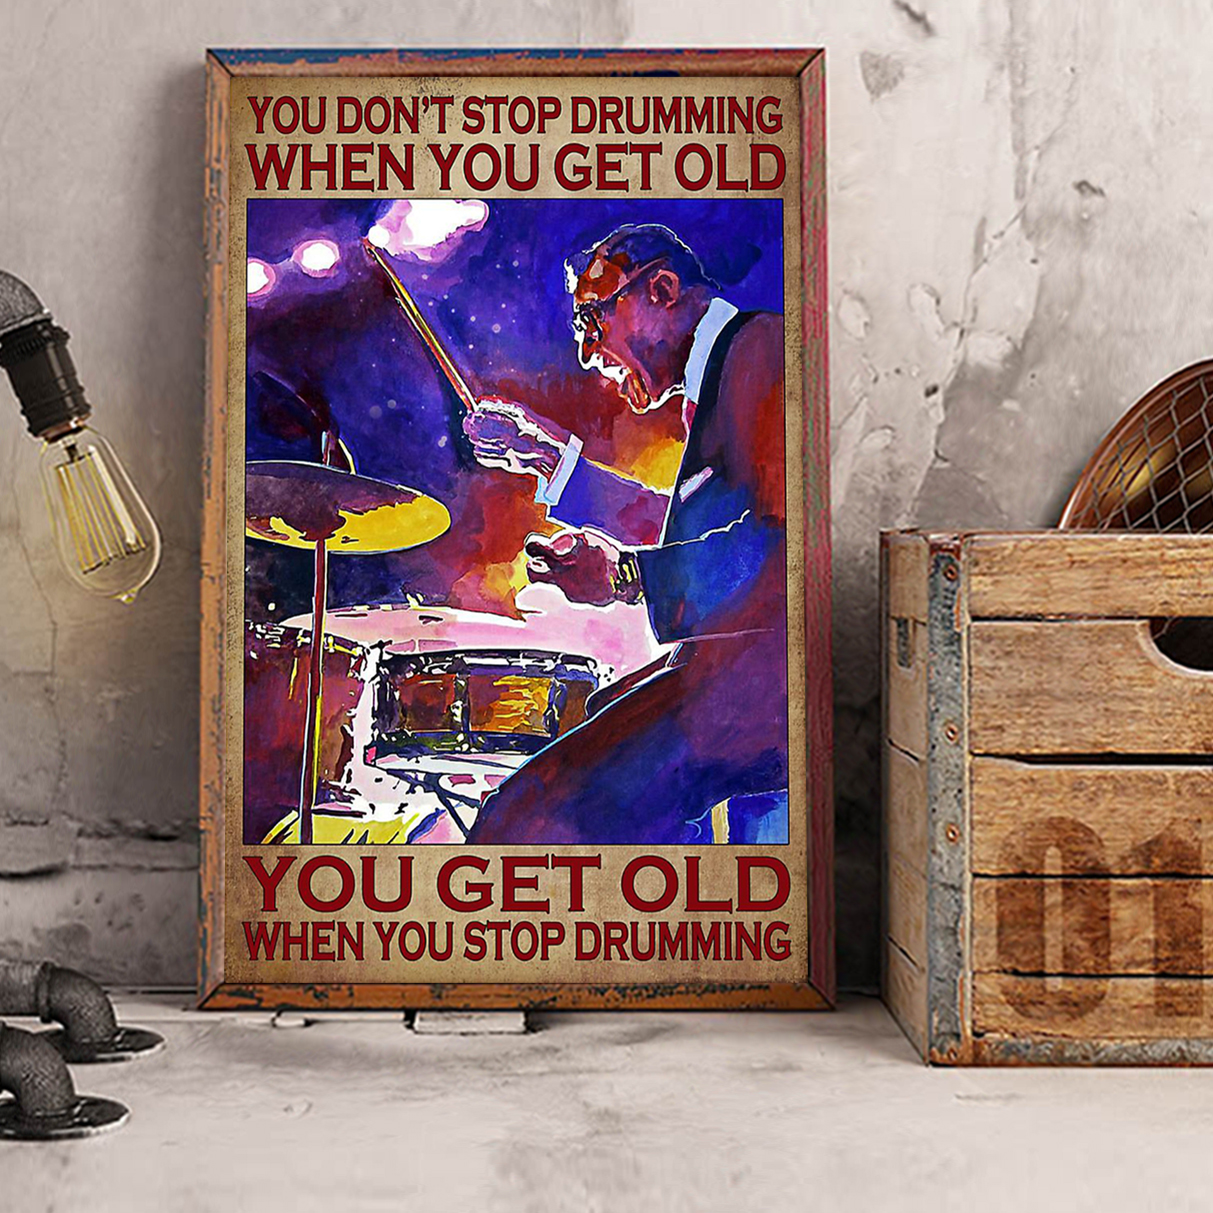 You don't stop drumming when you get old poster A1